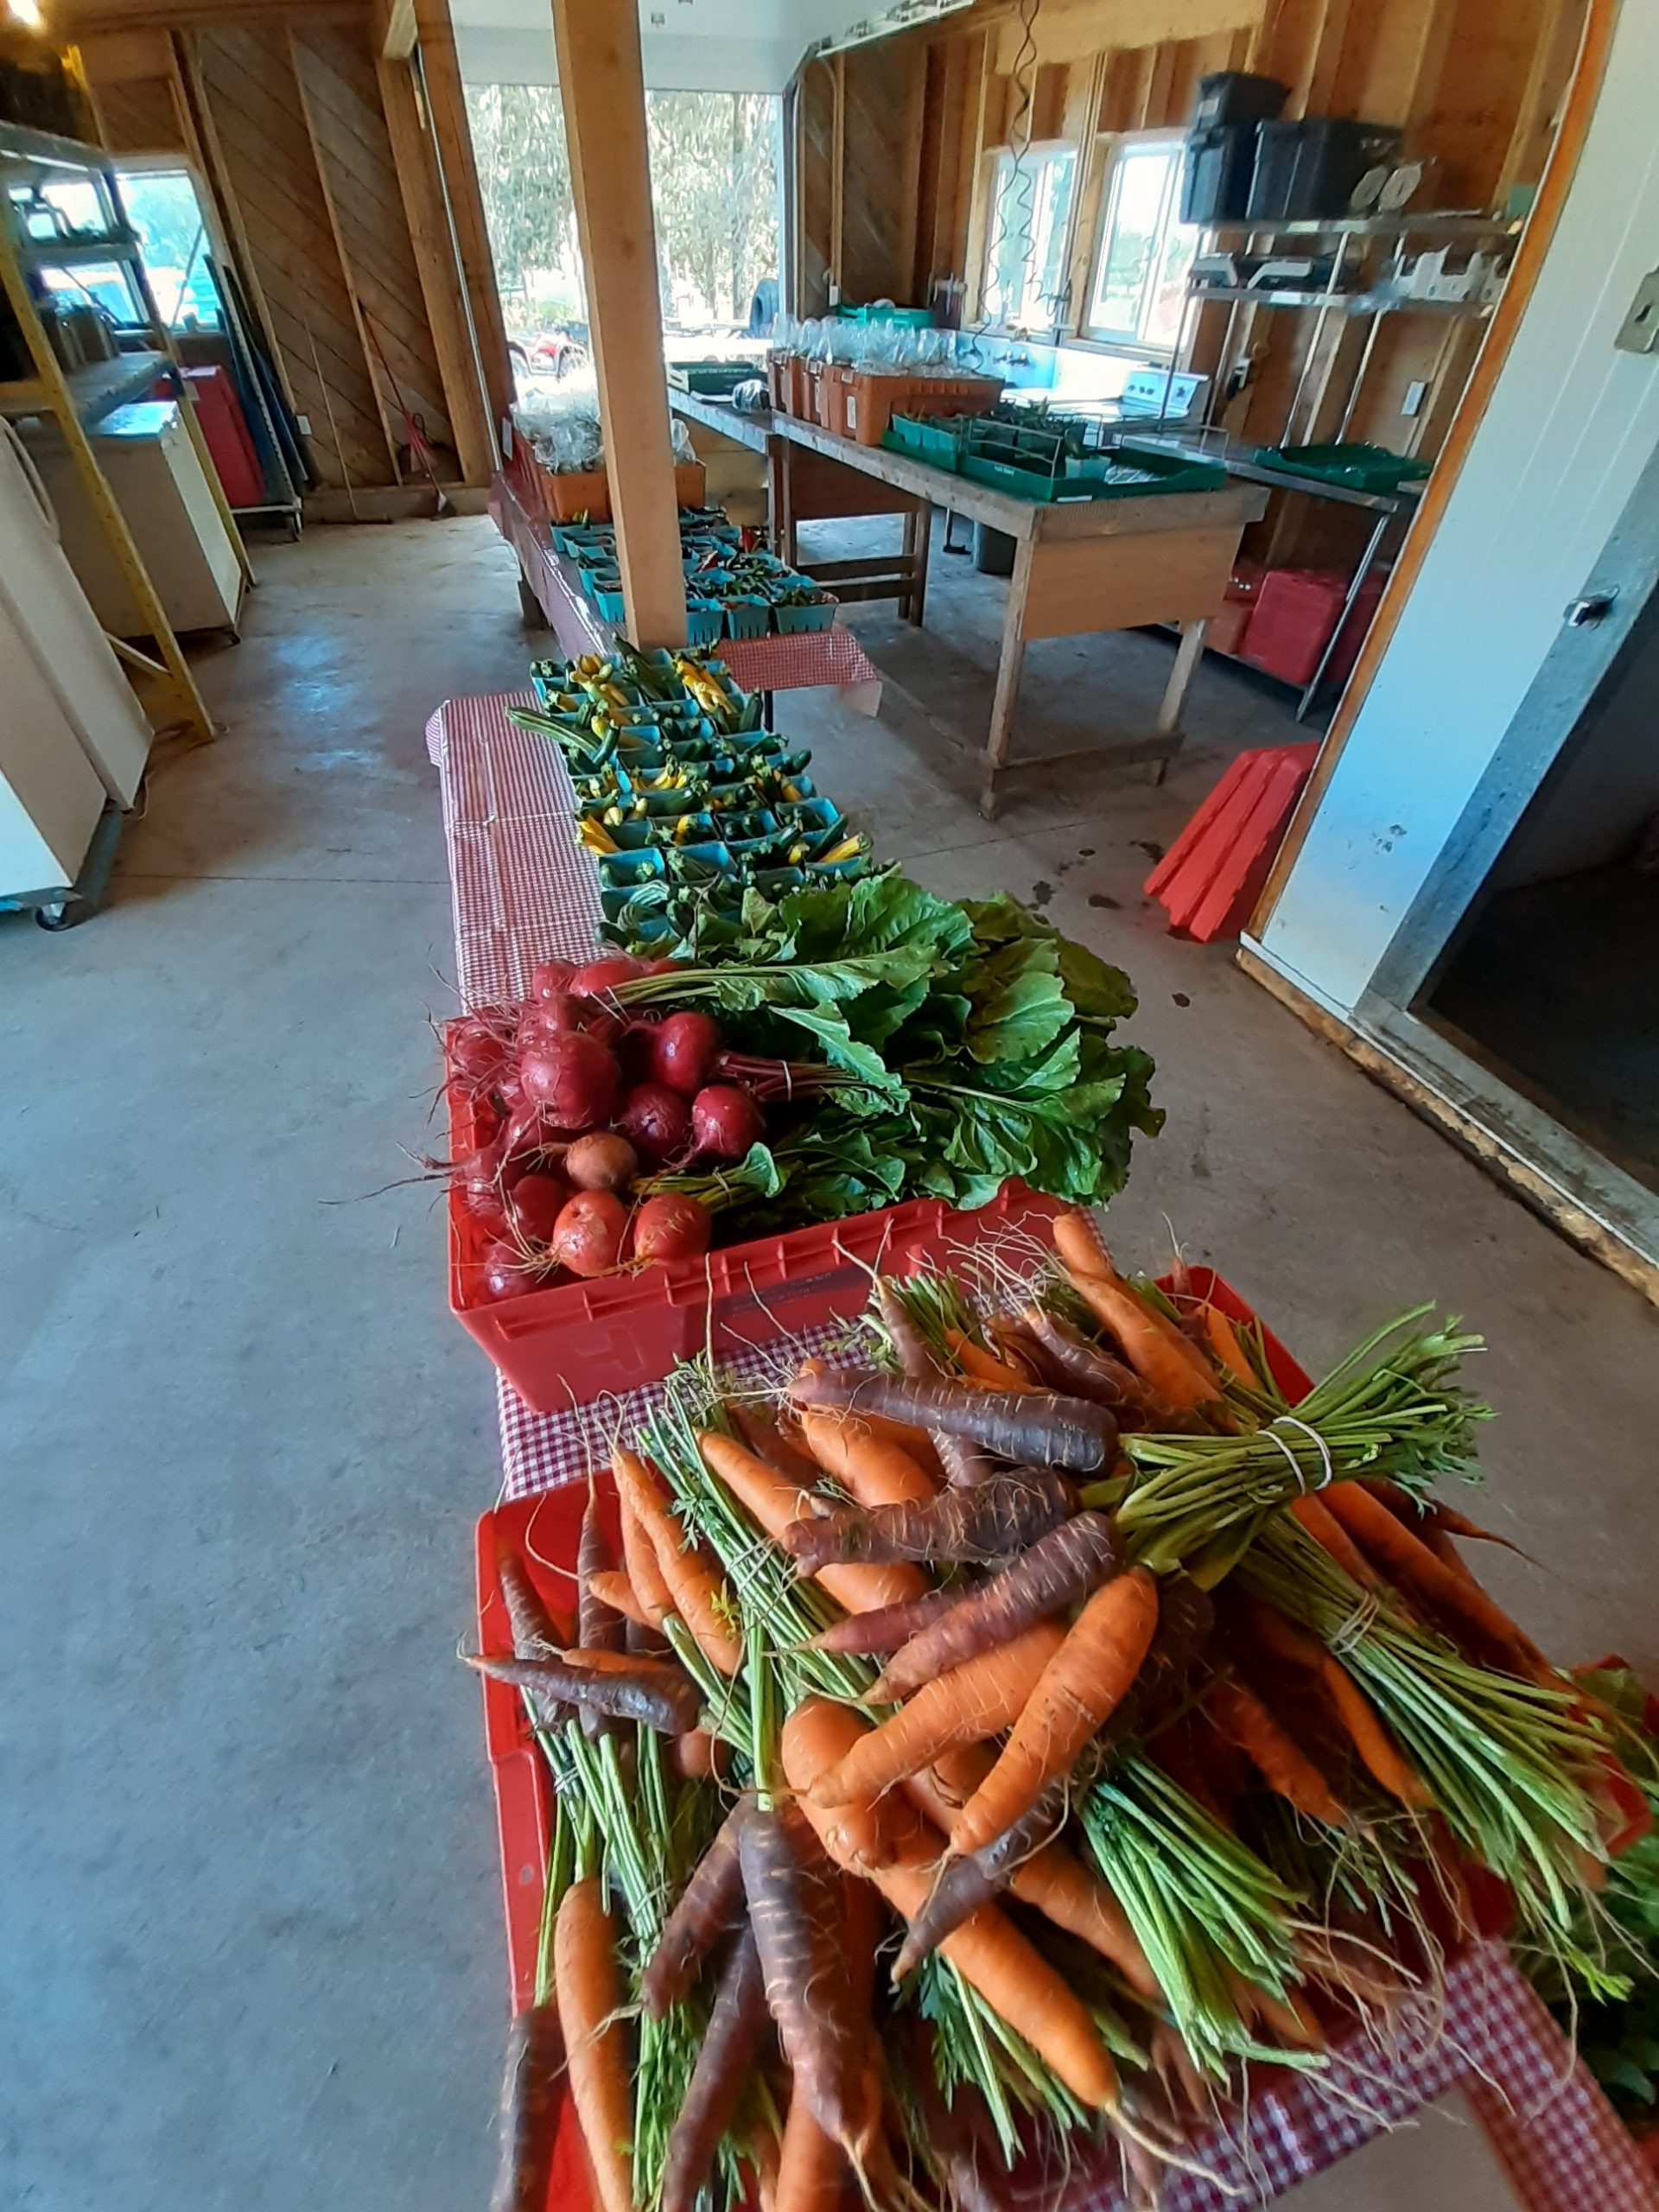 wind whipped farm metchosin vancouver island farm hand young agrarians jobs